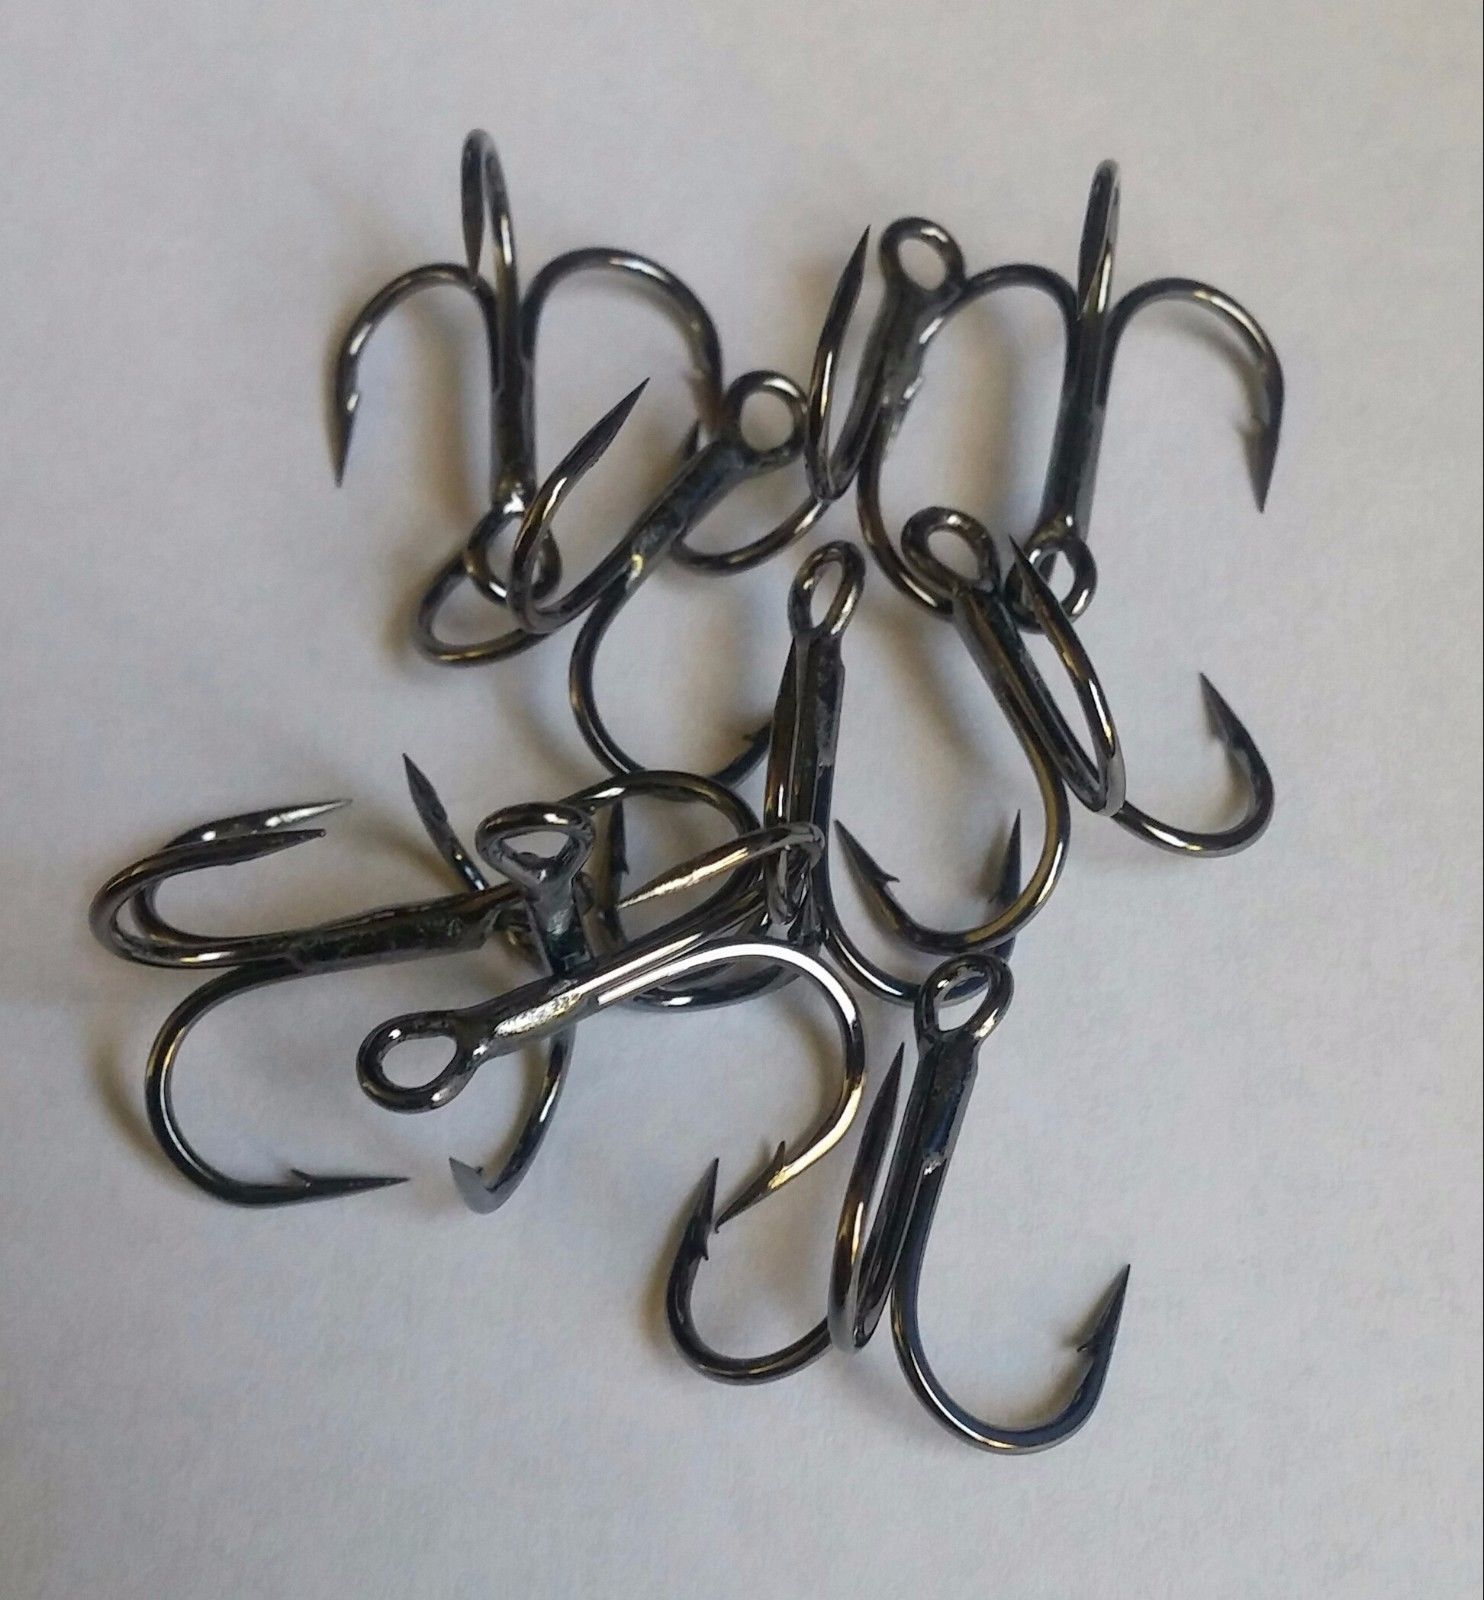 tackle - treble hooks sz 6 4 2 replacement for best squarebill crankbait popper shad blue gill bream